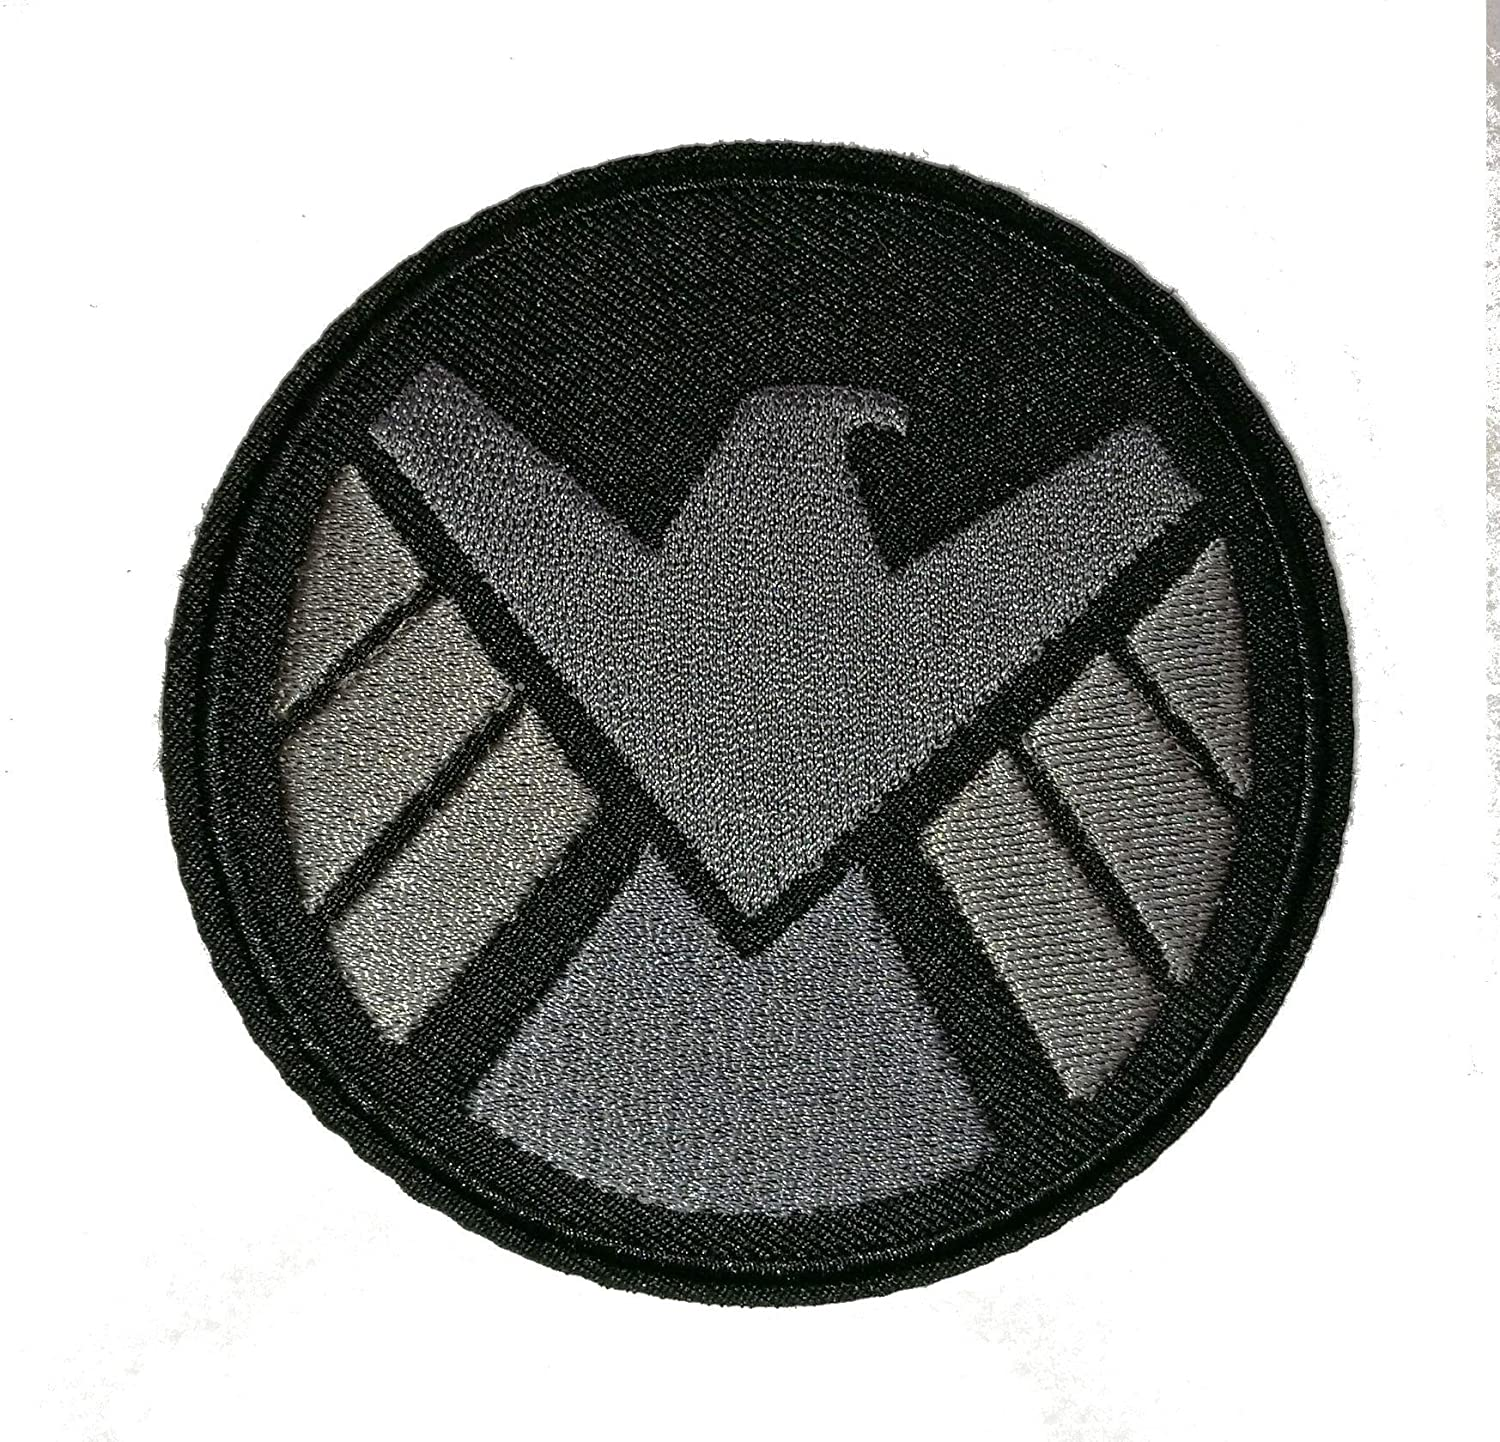 Agents of Shield Superhero s.h.i.e.l.d Cloth Iron On Patches